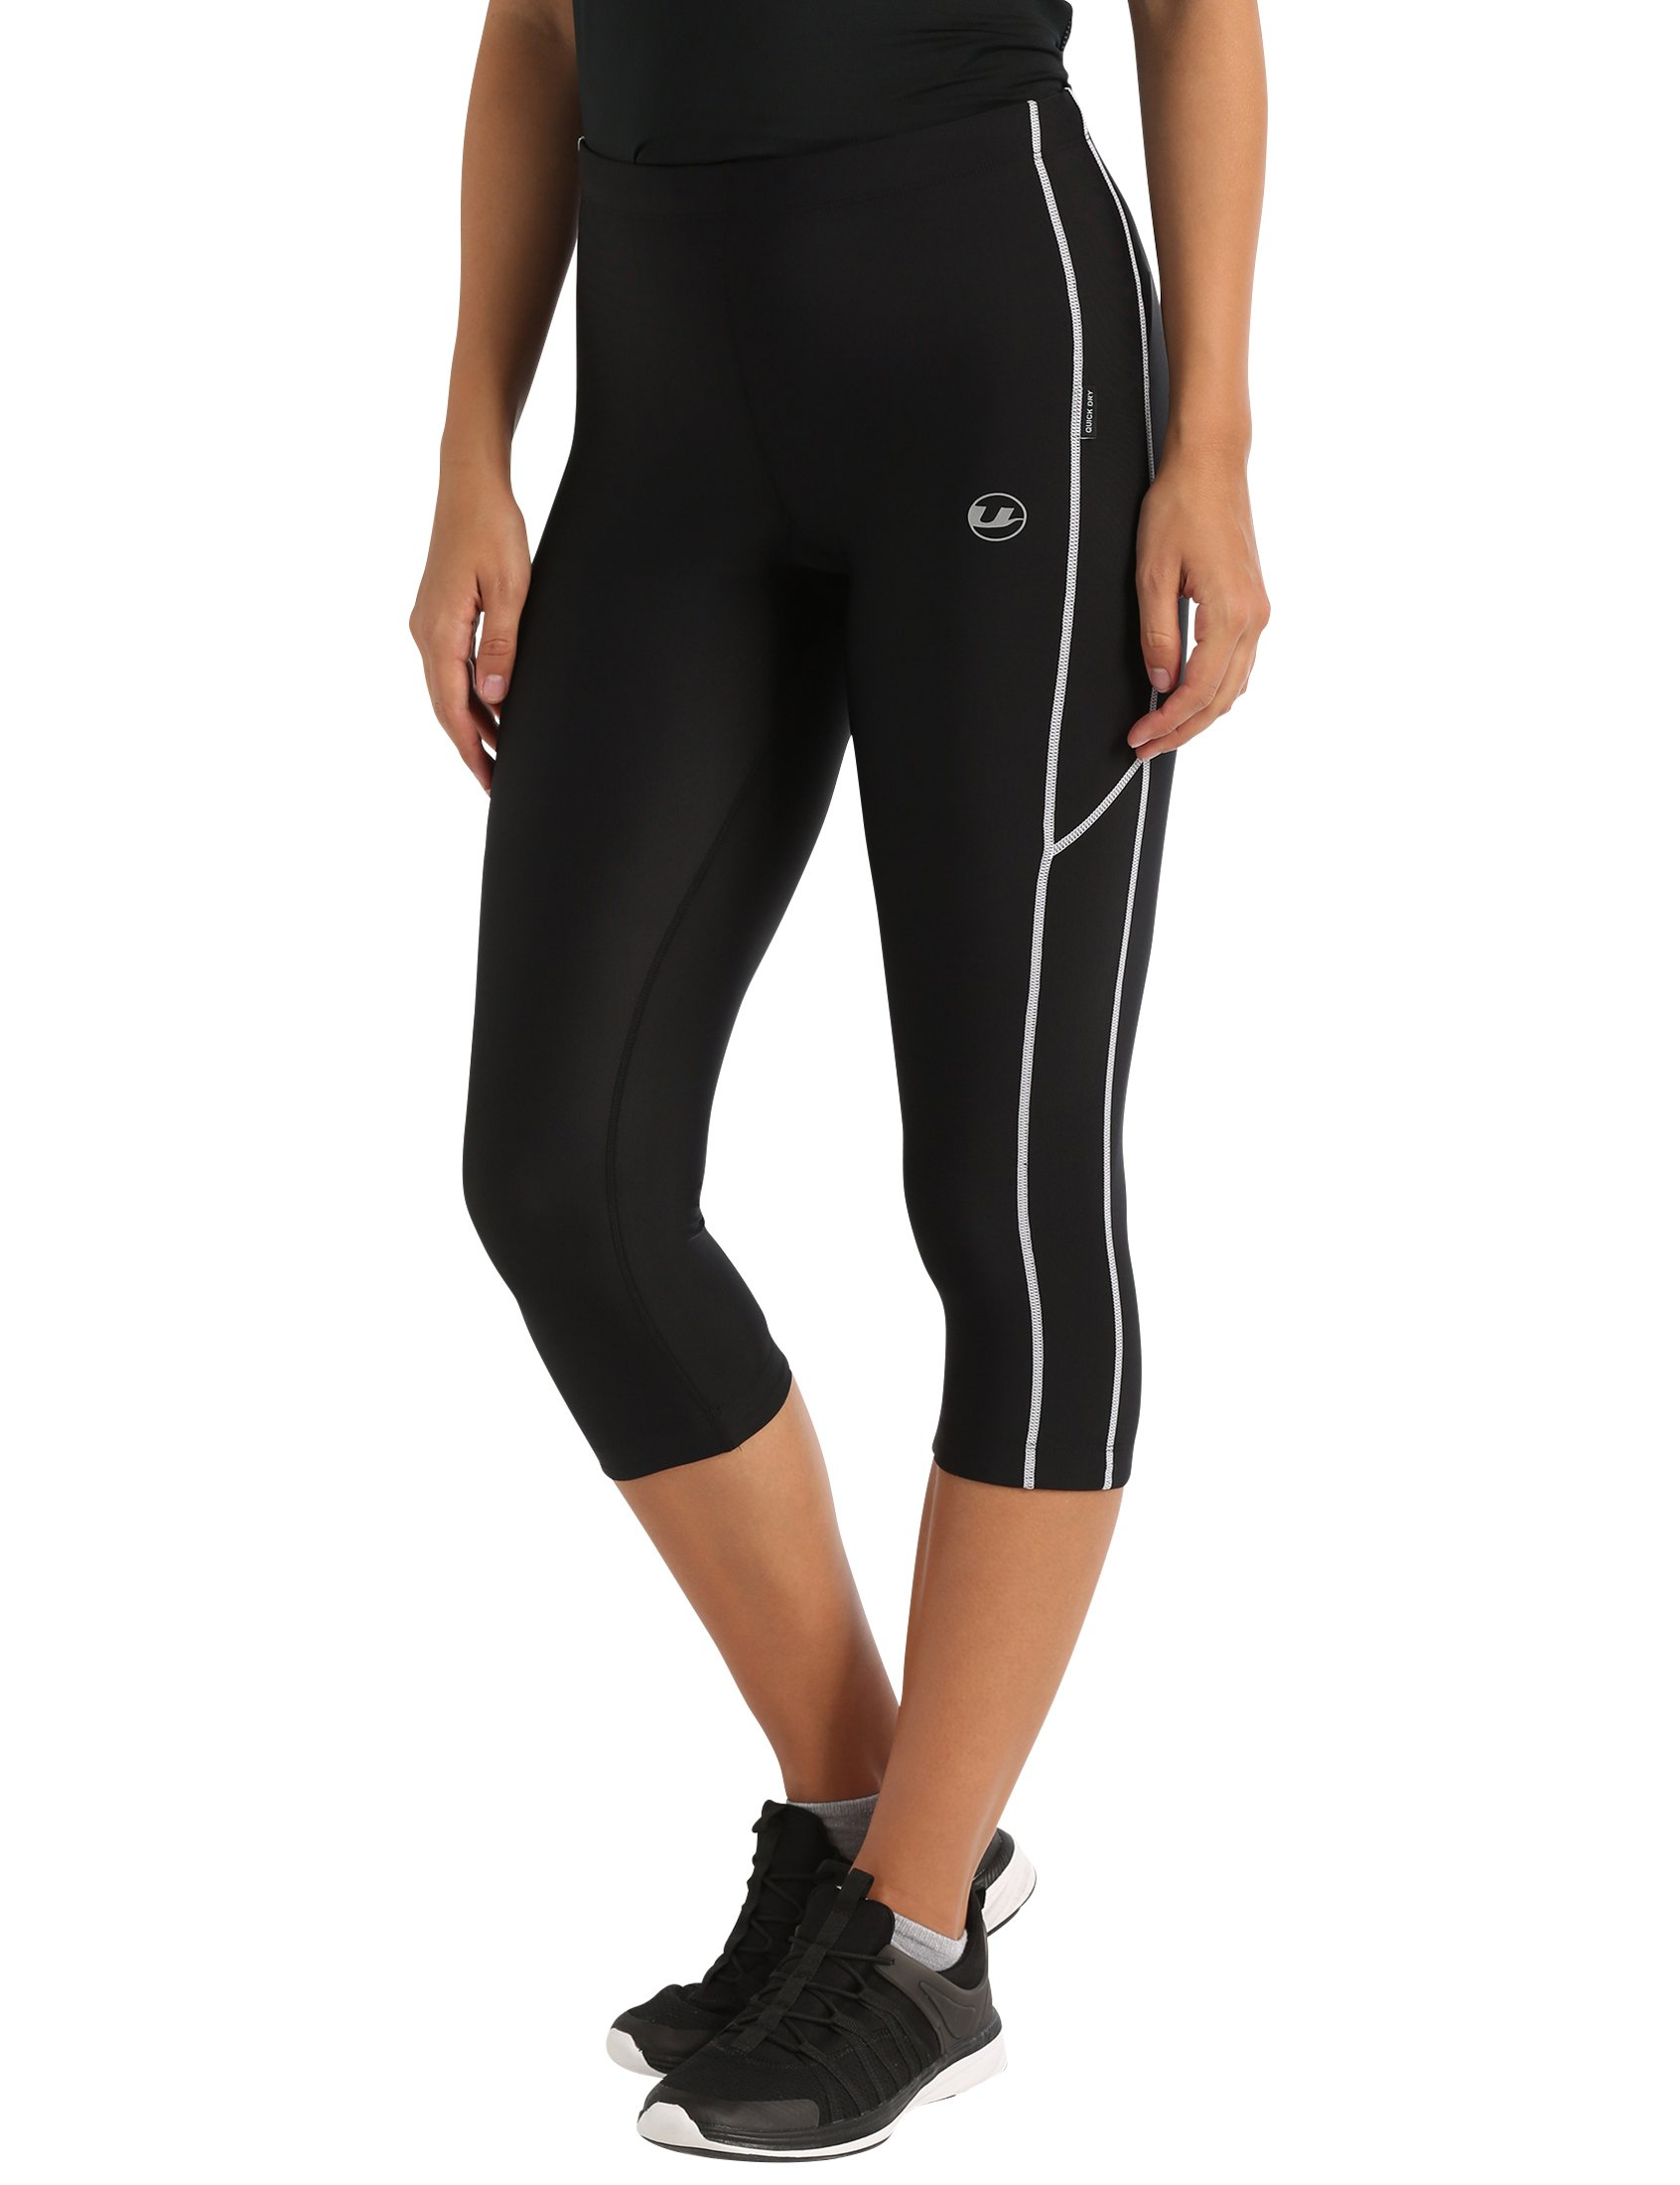 71ite8CPPGL - Ultrasport Women's Running Pants Capri with Compression Effect & Quick-Dry-Function